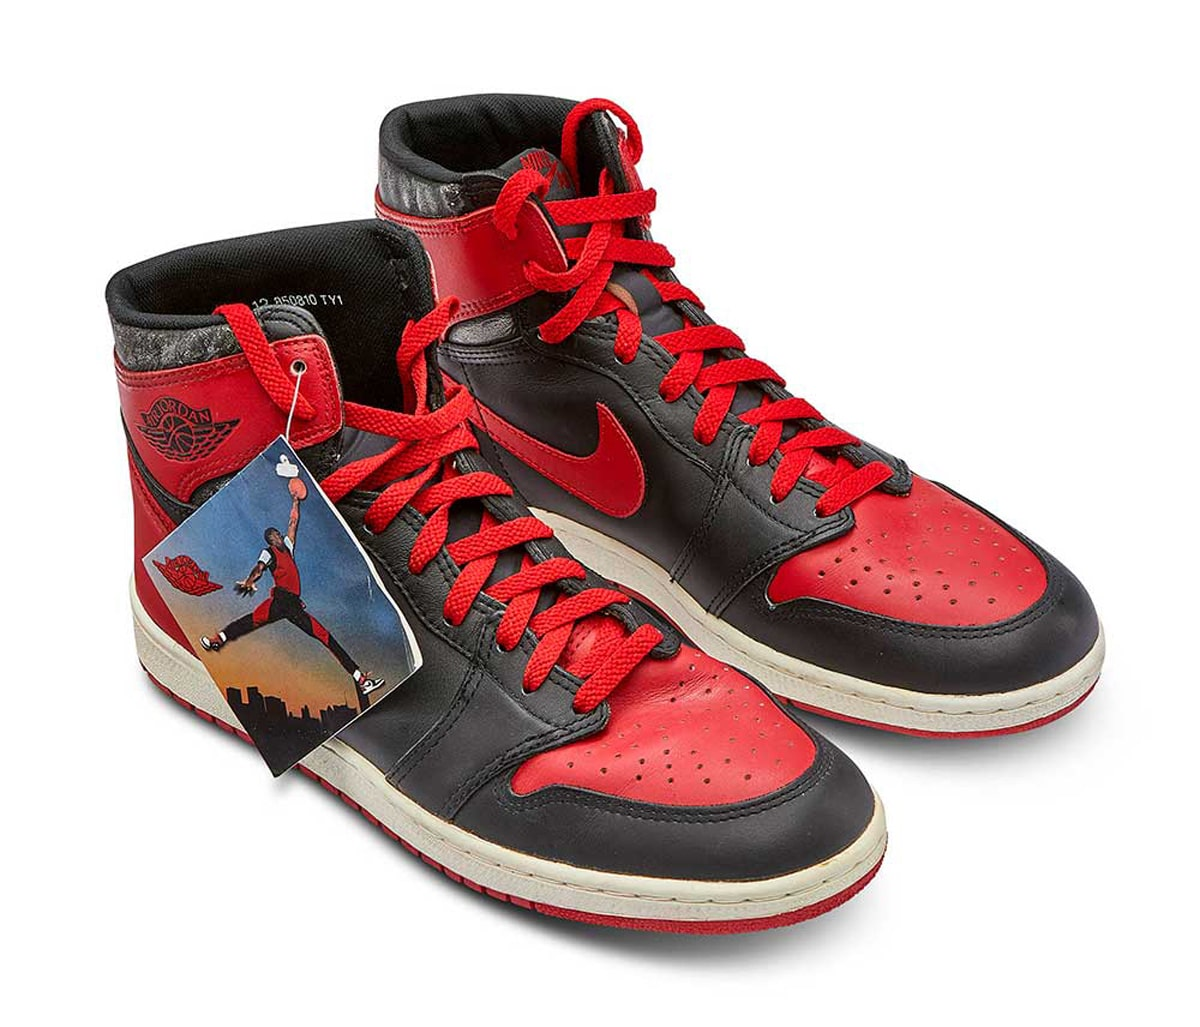 hot sale online 8e584 da02c The Air Jordan 1